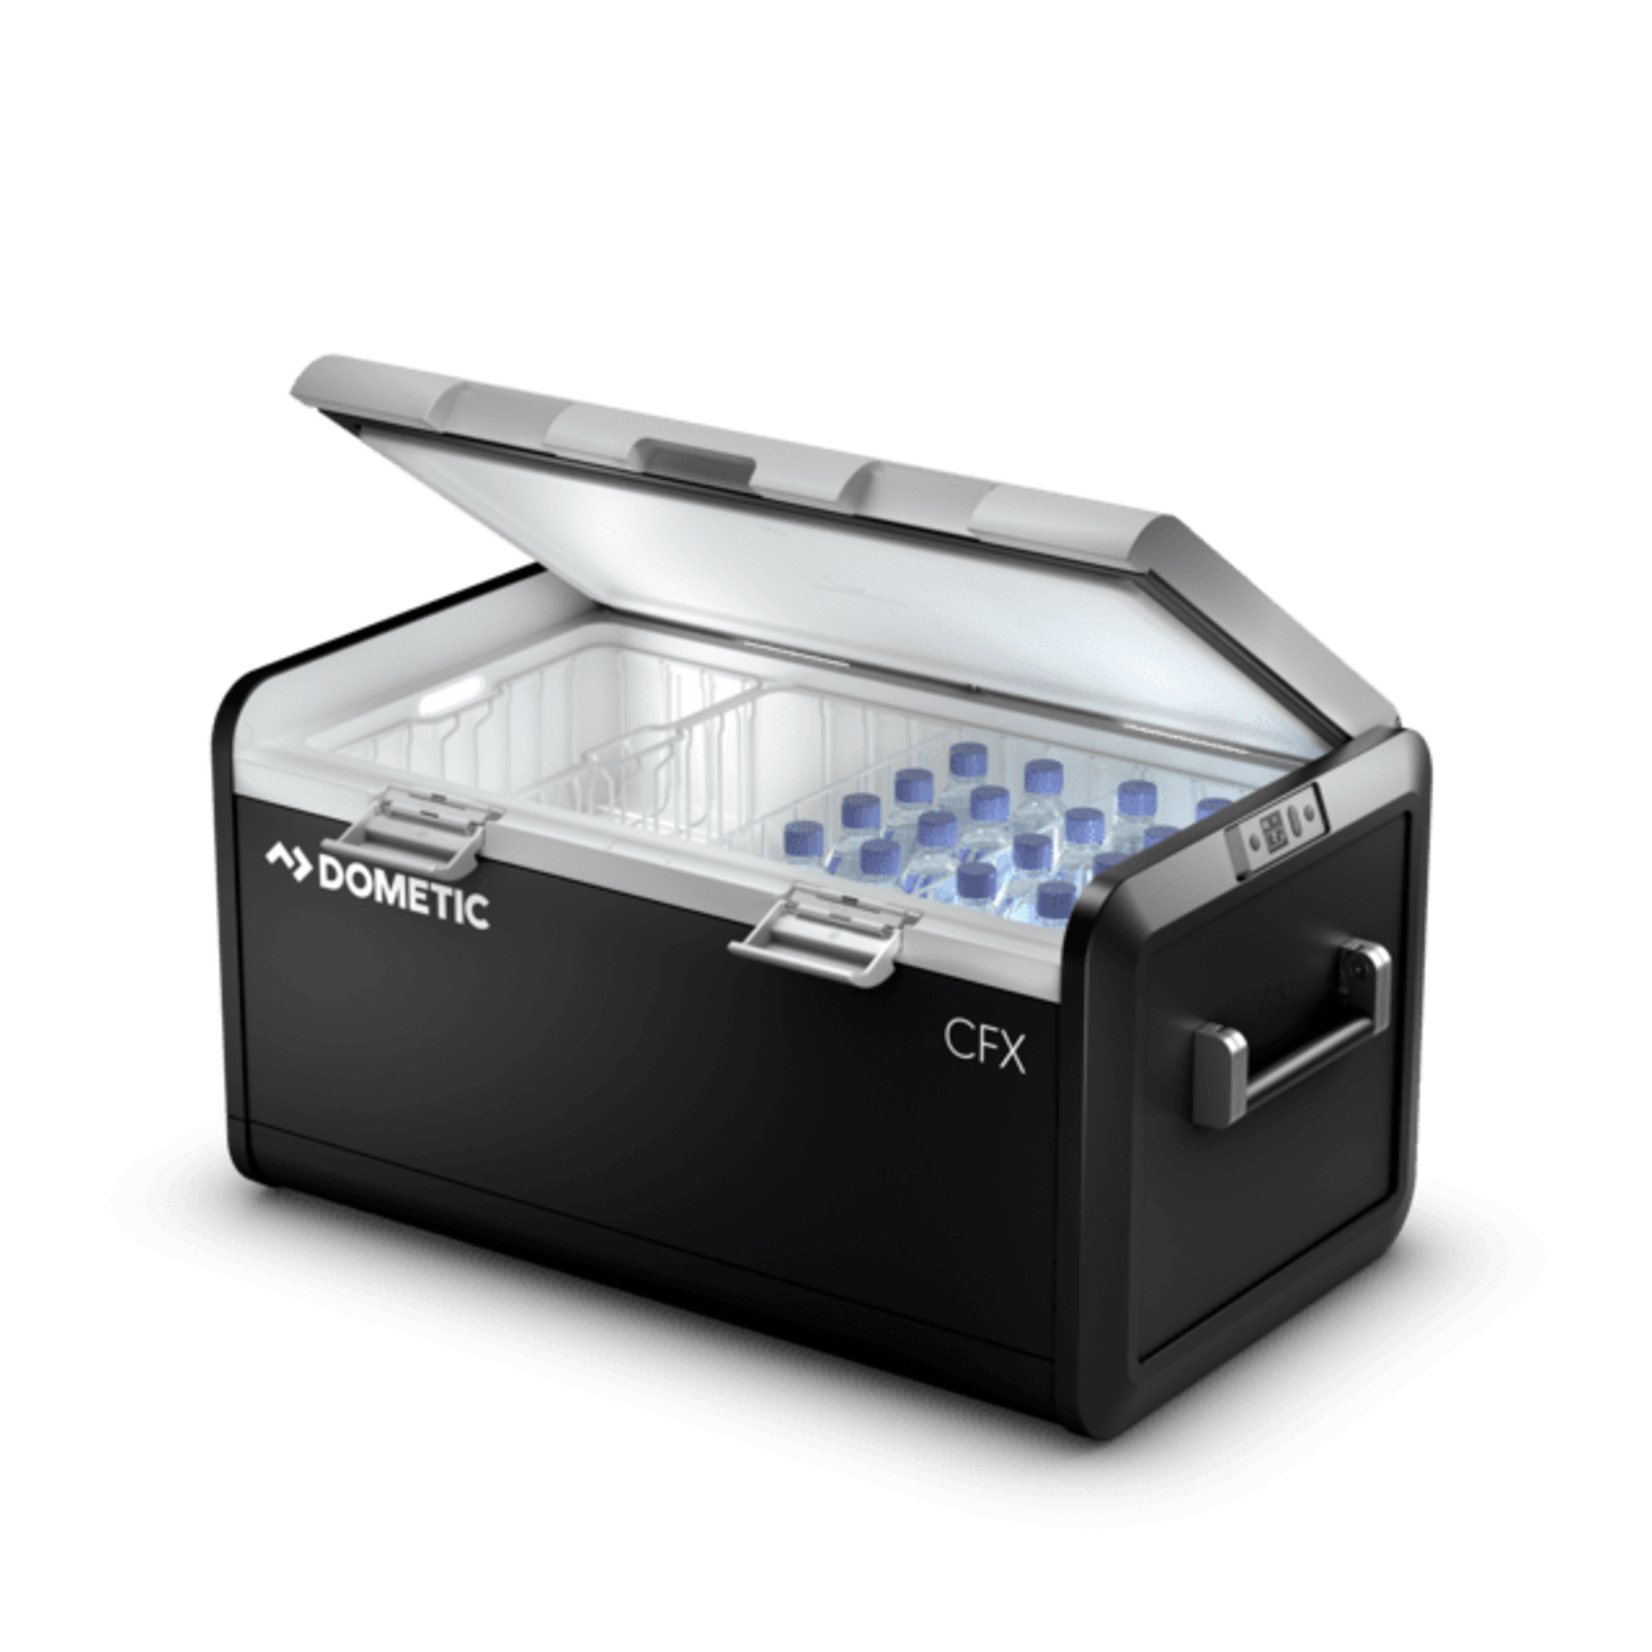 Dometic Dometic CFX3 Electric Cooler